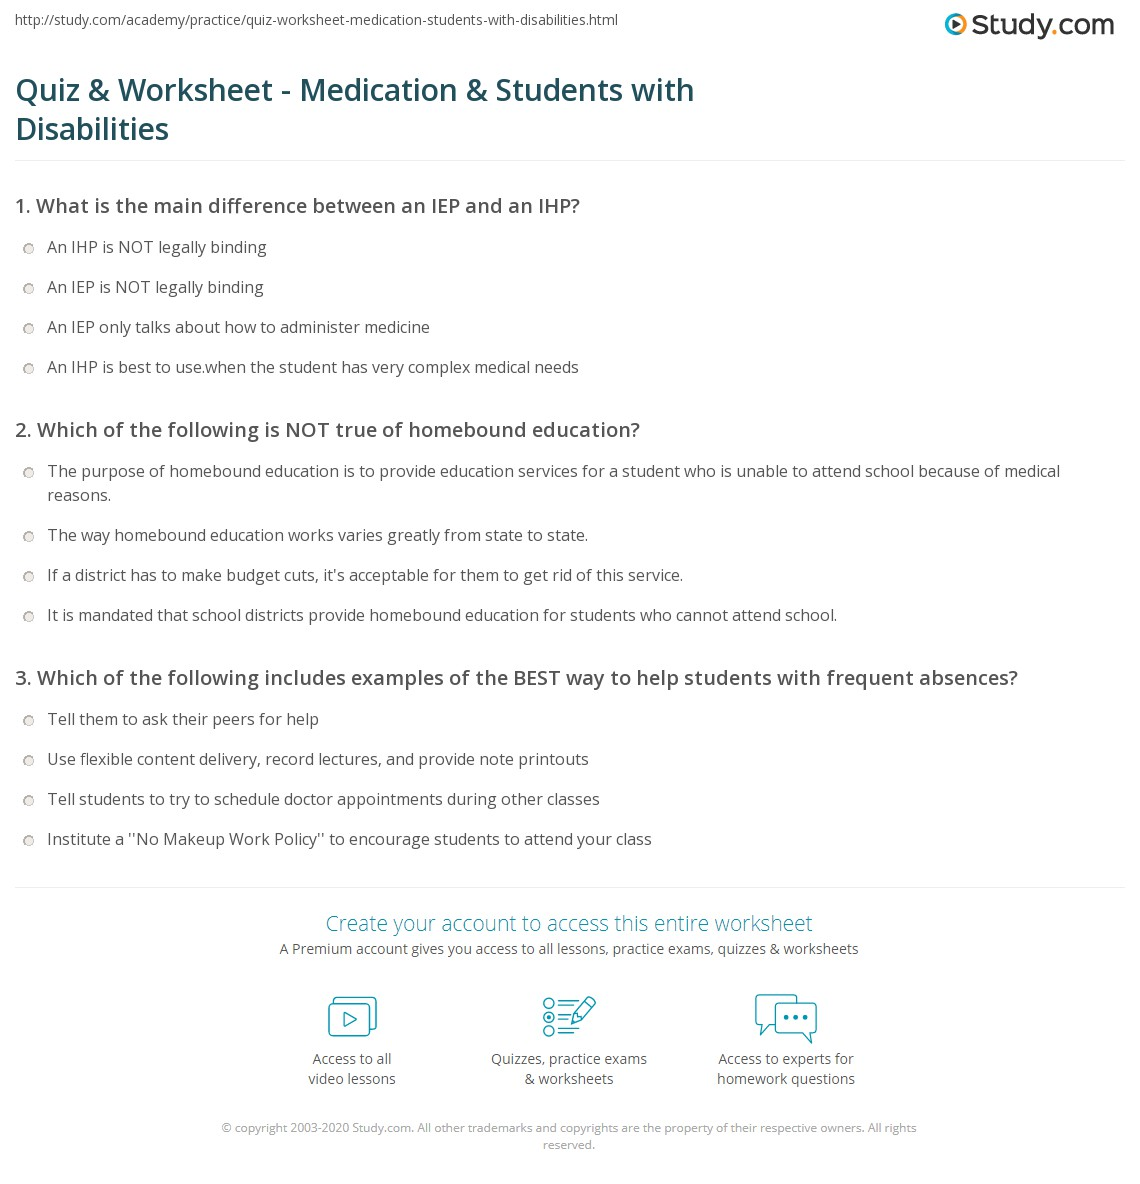 quiz worksheet medication students with disabilities study com